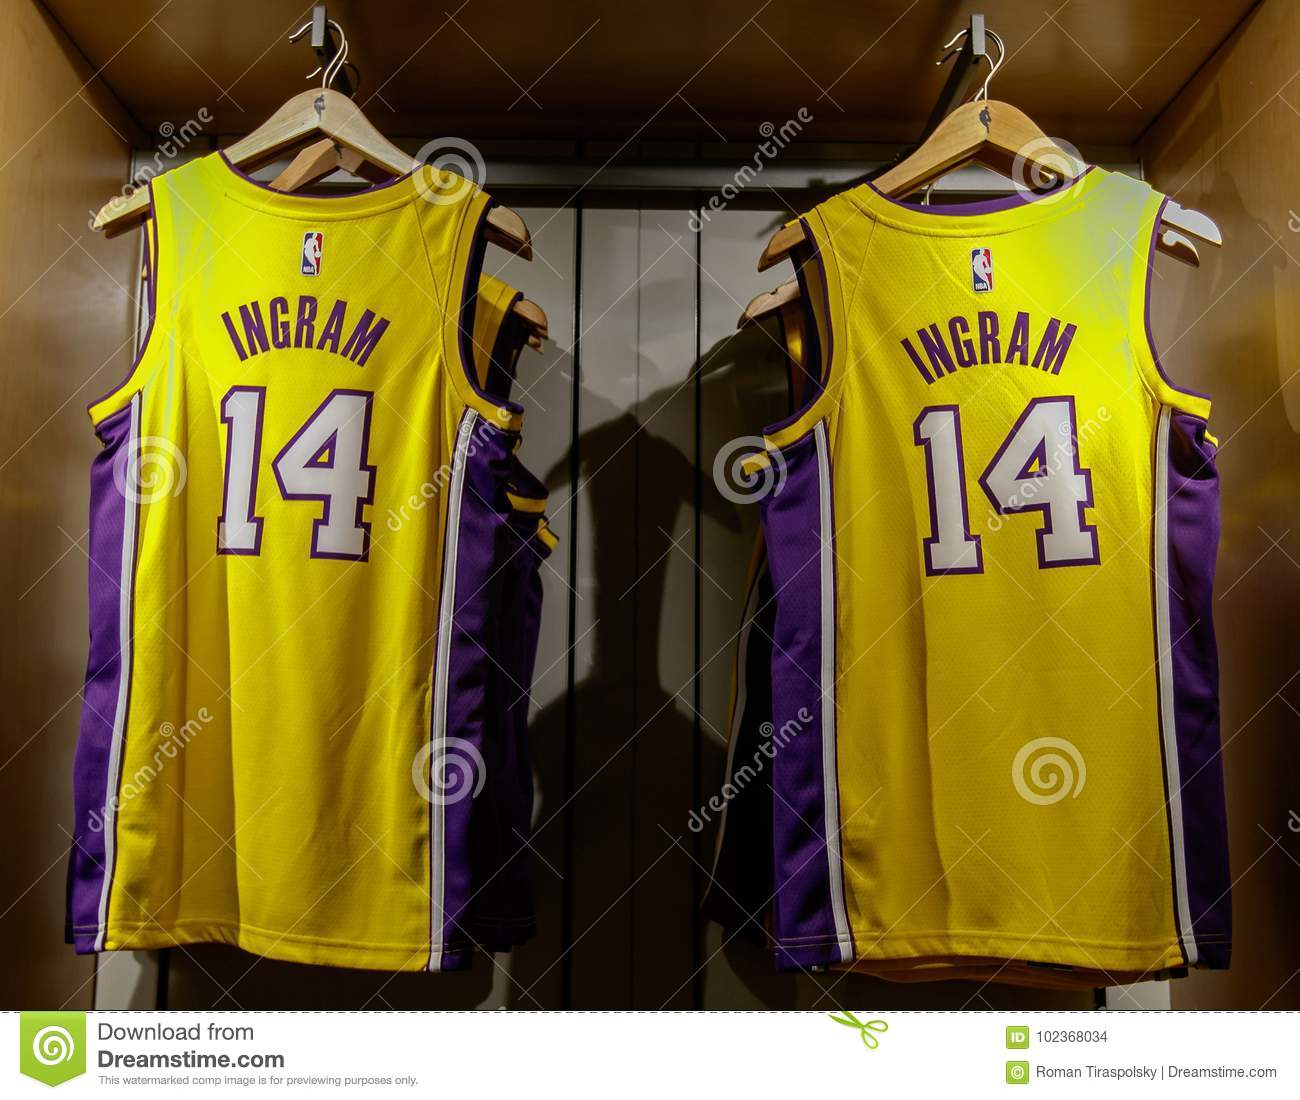 95d312b6597 New York, October 20, 2017: Replica jersey of Brandon Ingram of Los Angeles  Lakers on sale in the NBA store in Manhattan.